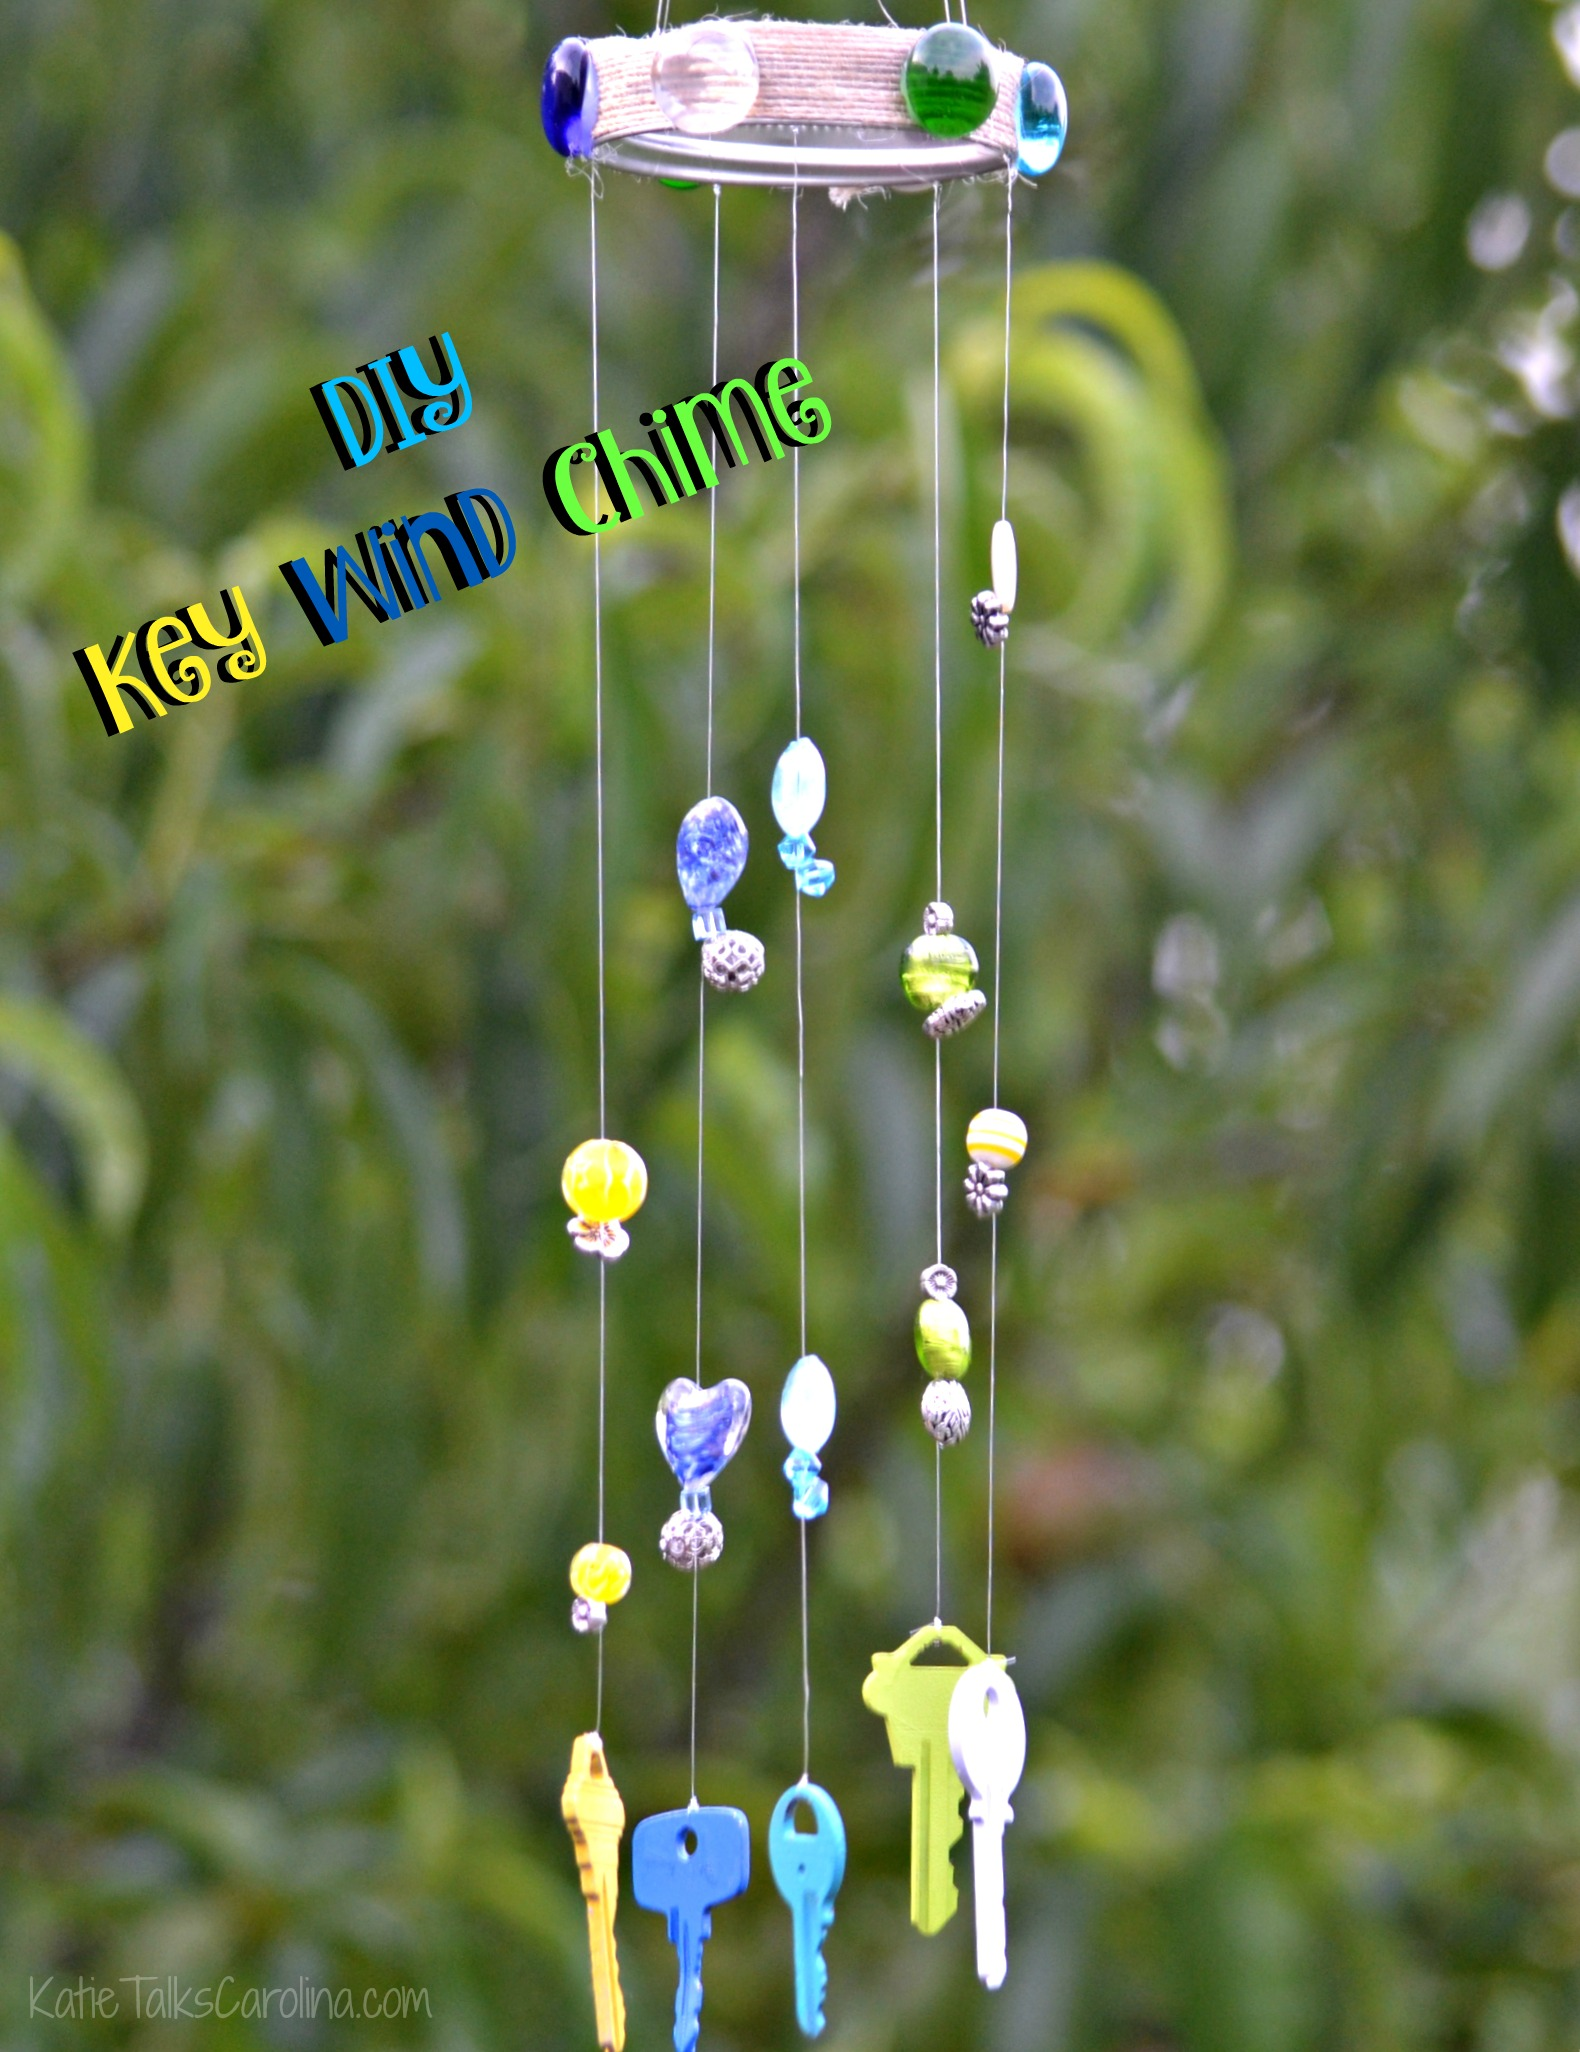 Diy key wind chime katie talks carolina for Easy to make wind chimes